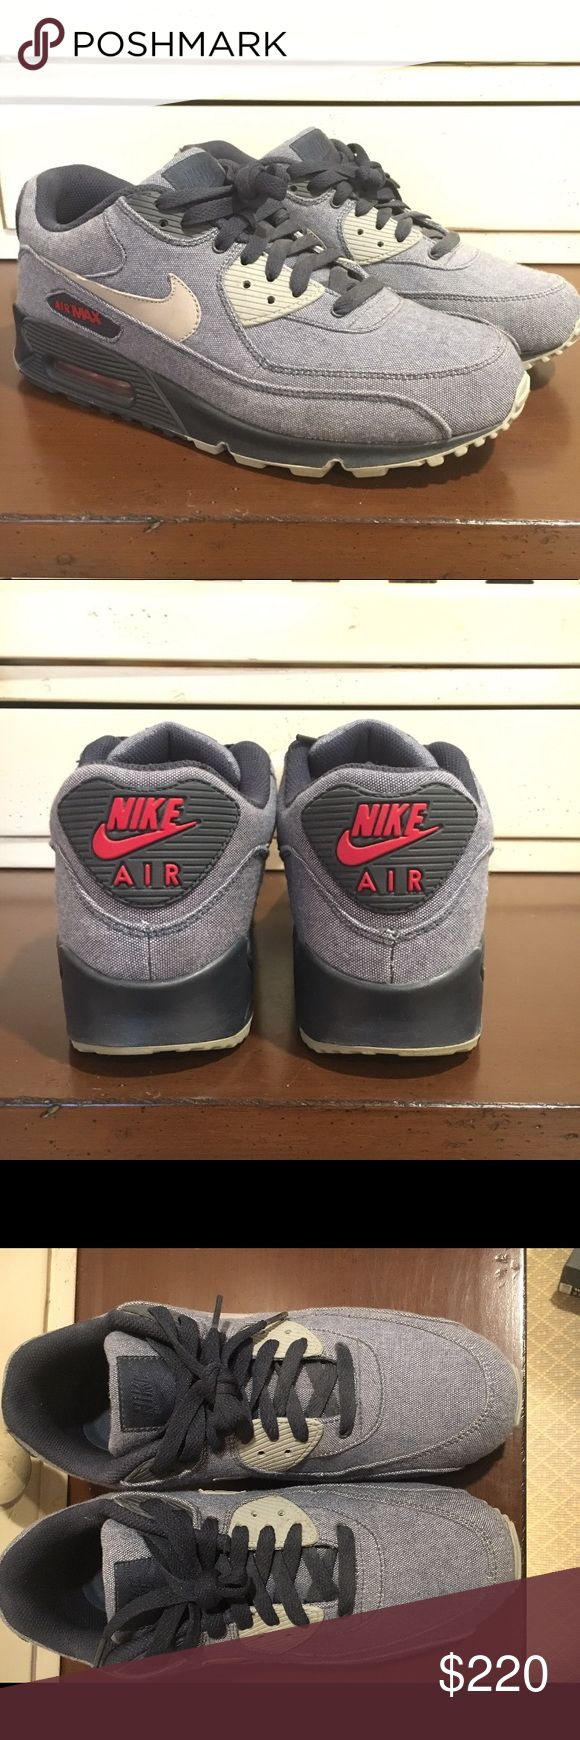 Nike air max 90 EU Demin QS Limited deadstock Limited edition, less than 1000 pairs, denim material, deadstock Nike Shoes Sneakers